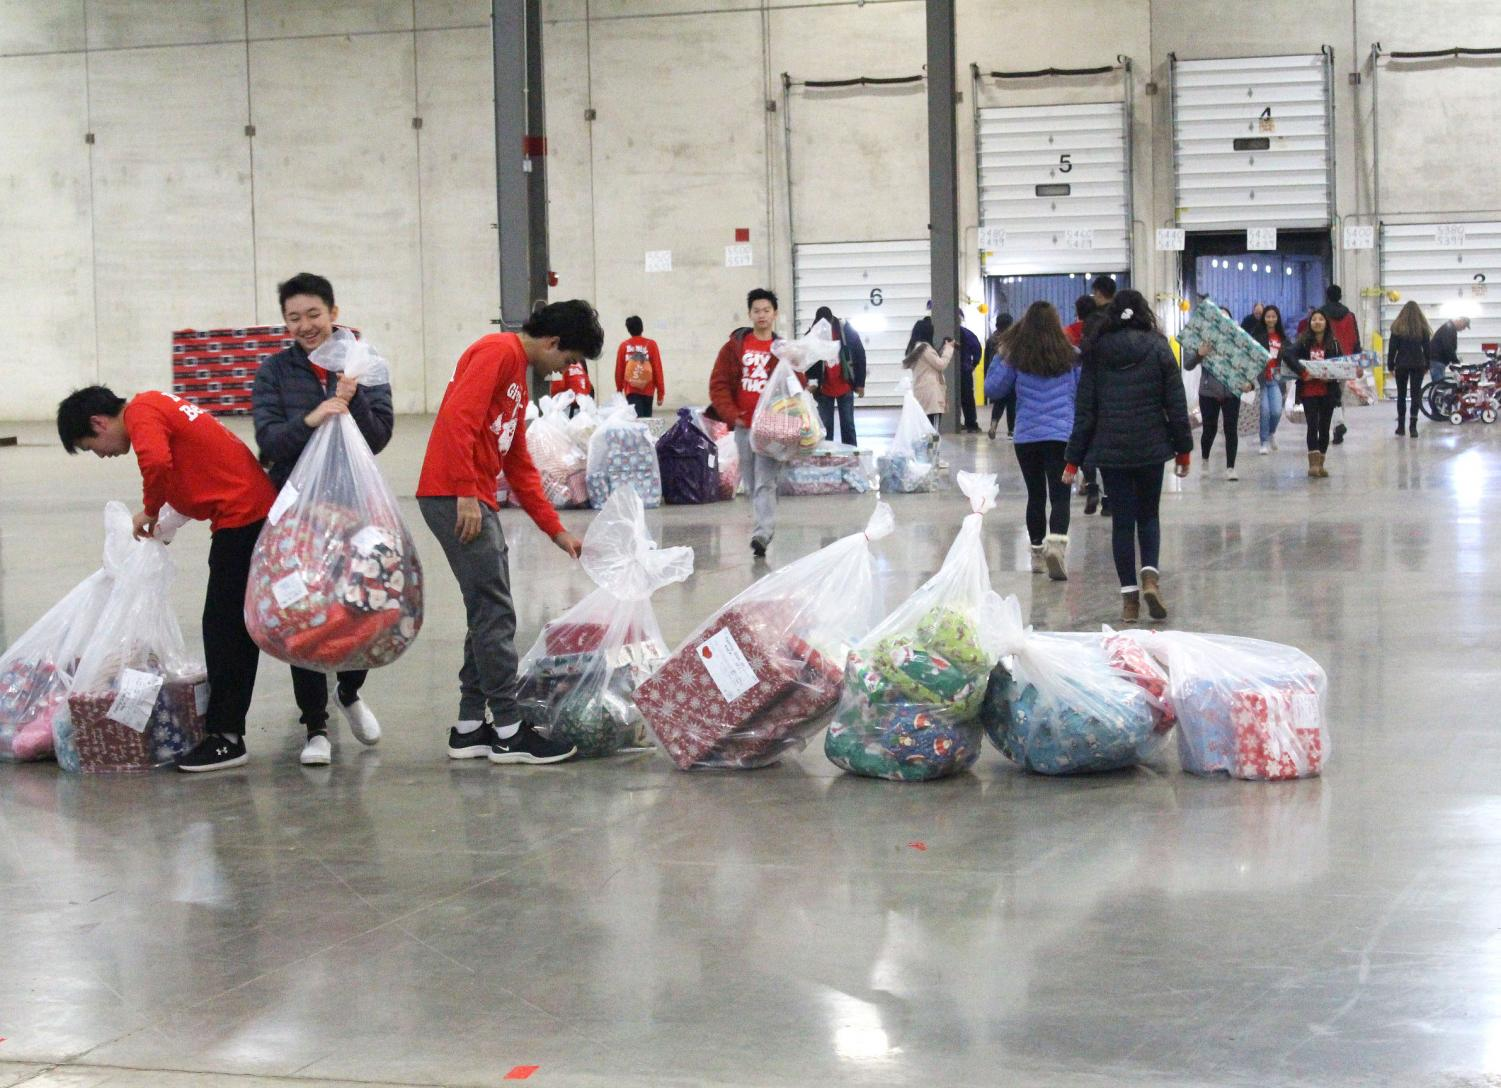 Volunteers line up bags of labeled gifts. Catholic Charities warehouse receives gifts from multiple families and organizations in Lake County to be donated to low income families in the area.